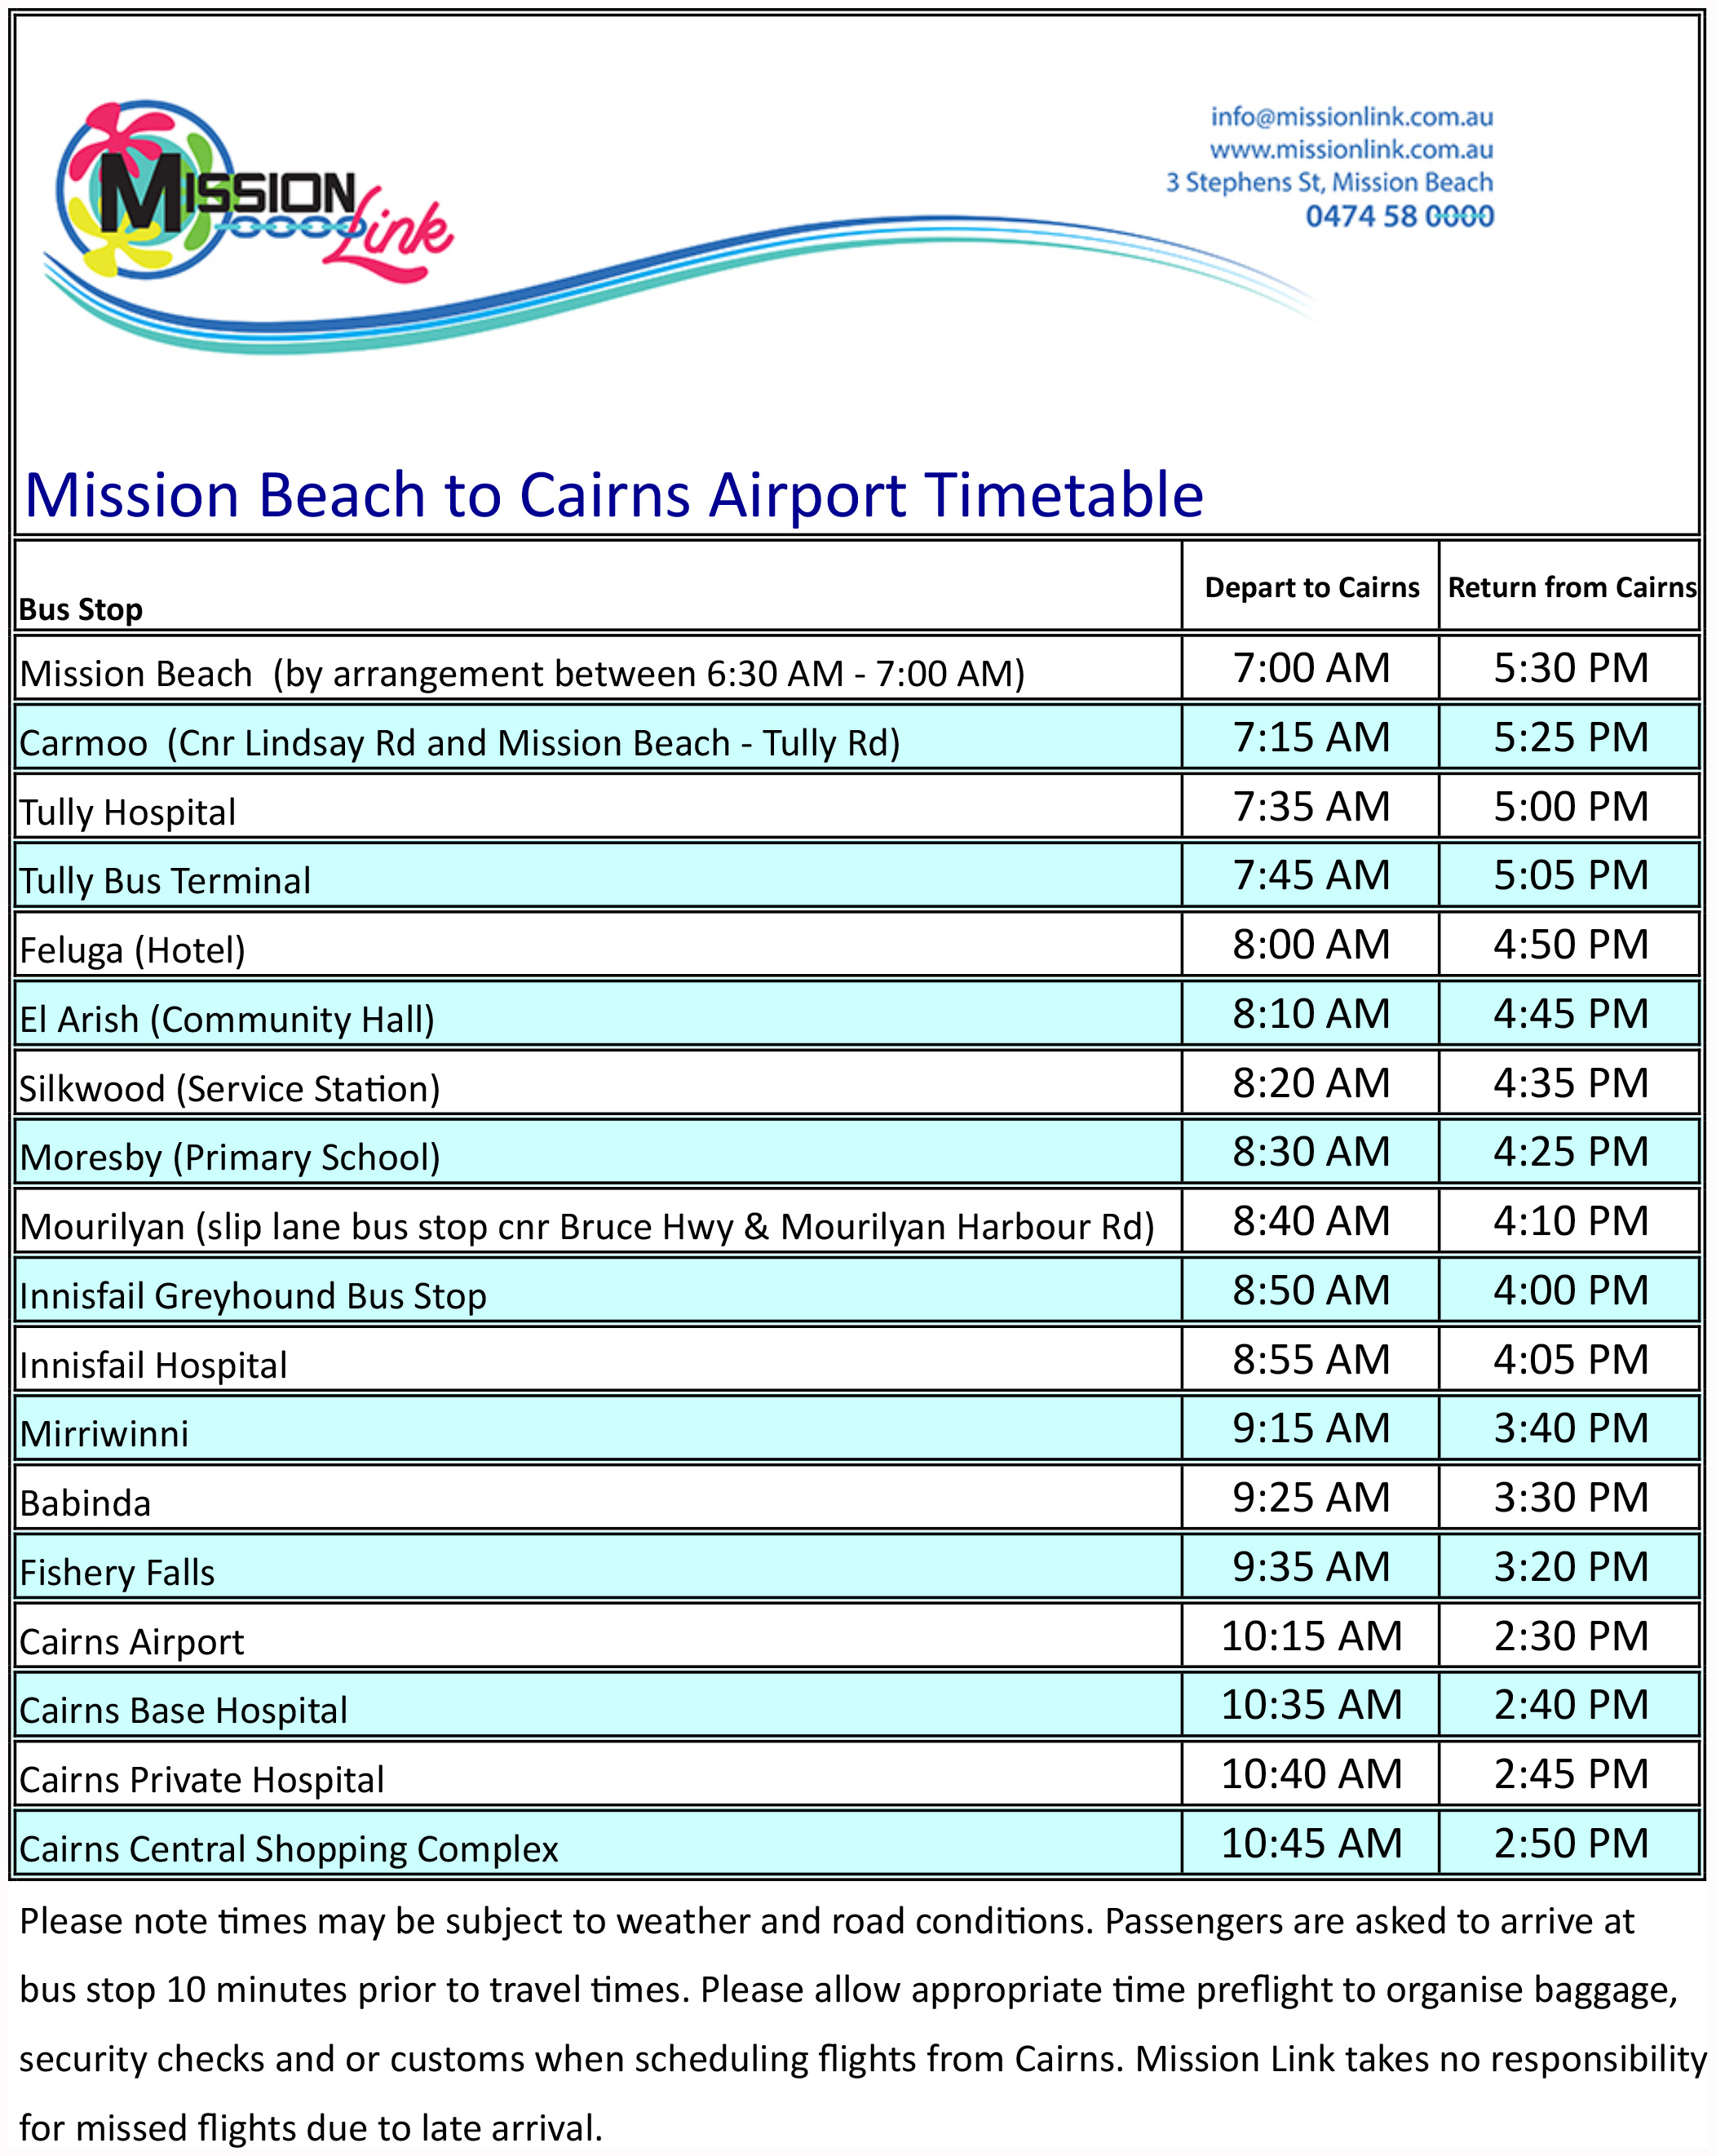 Timetable Mission Beach to Cairns